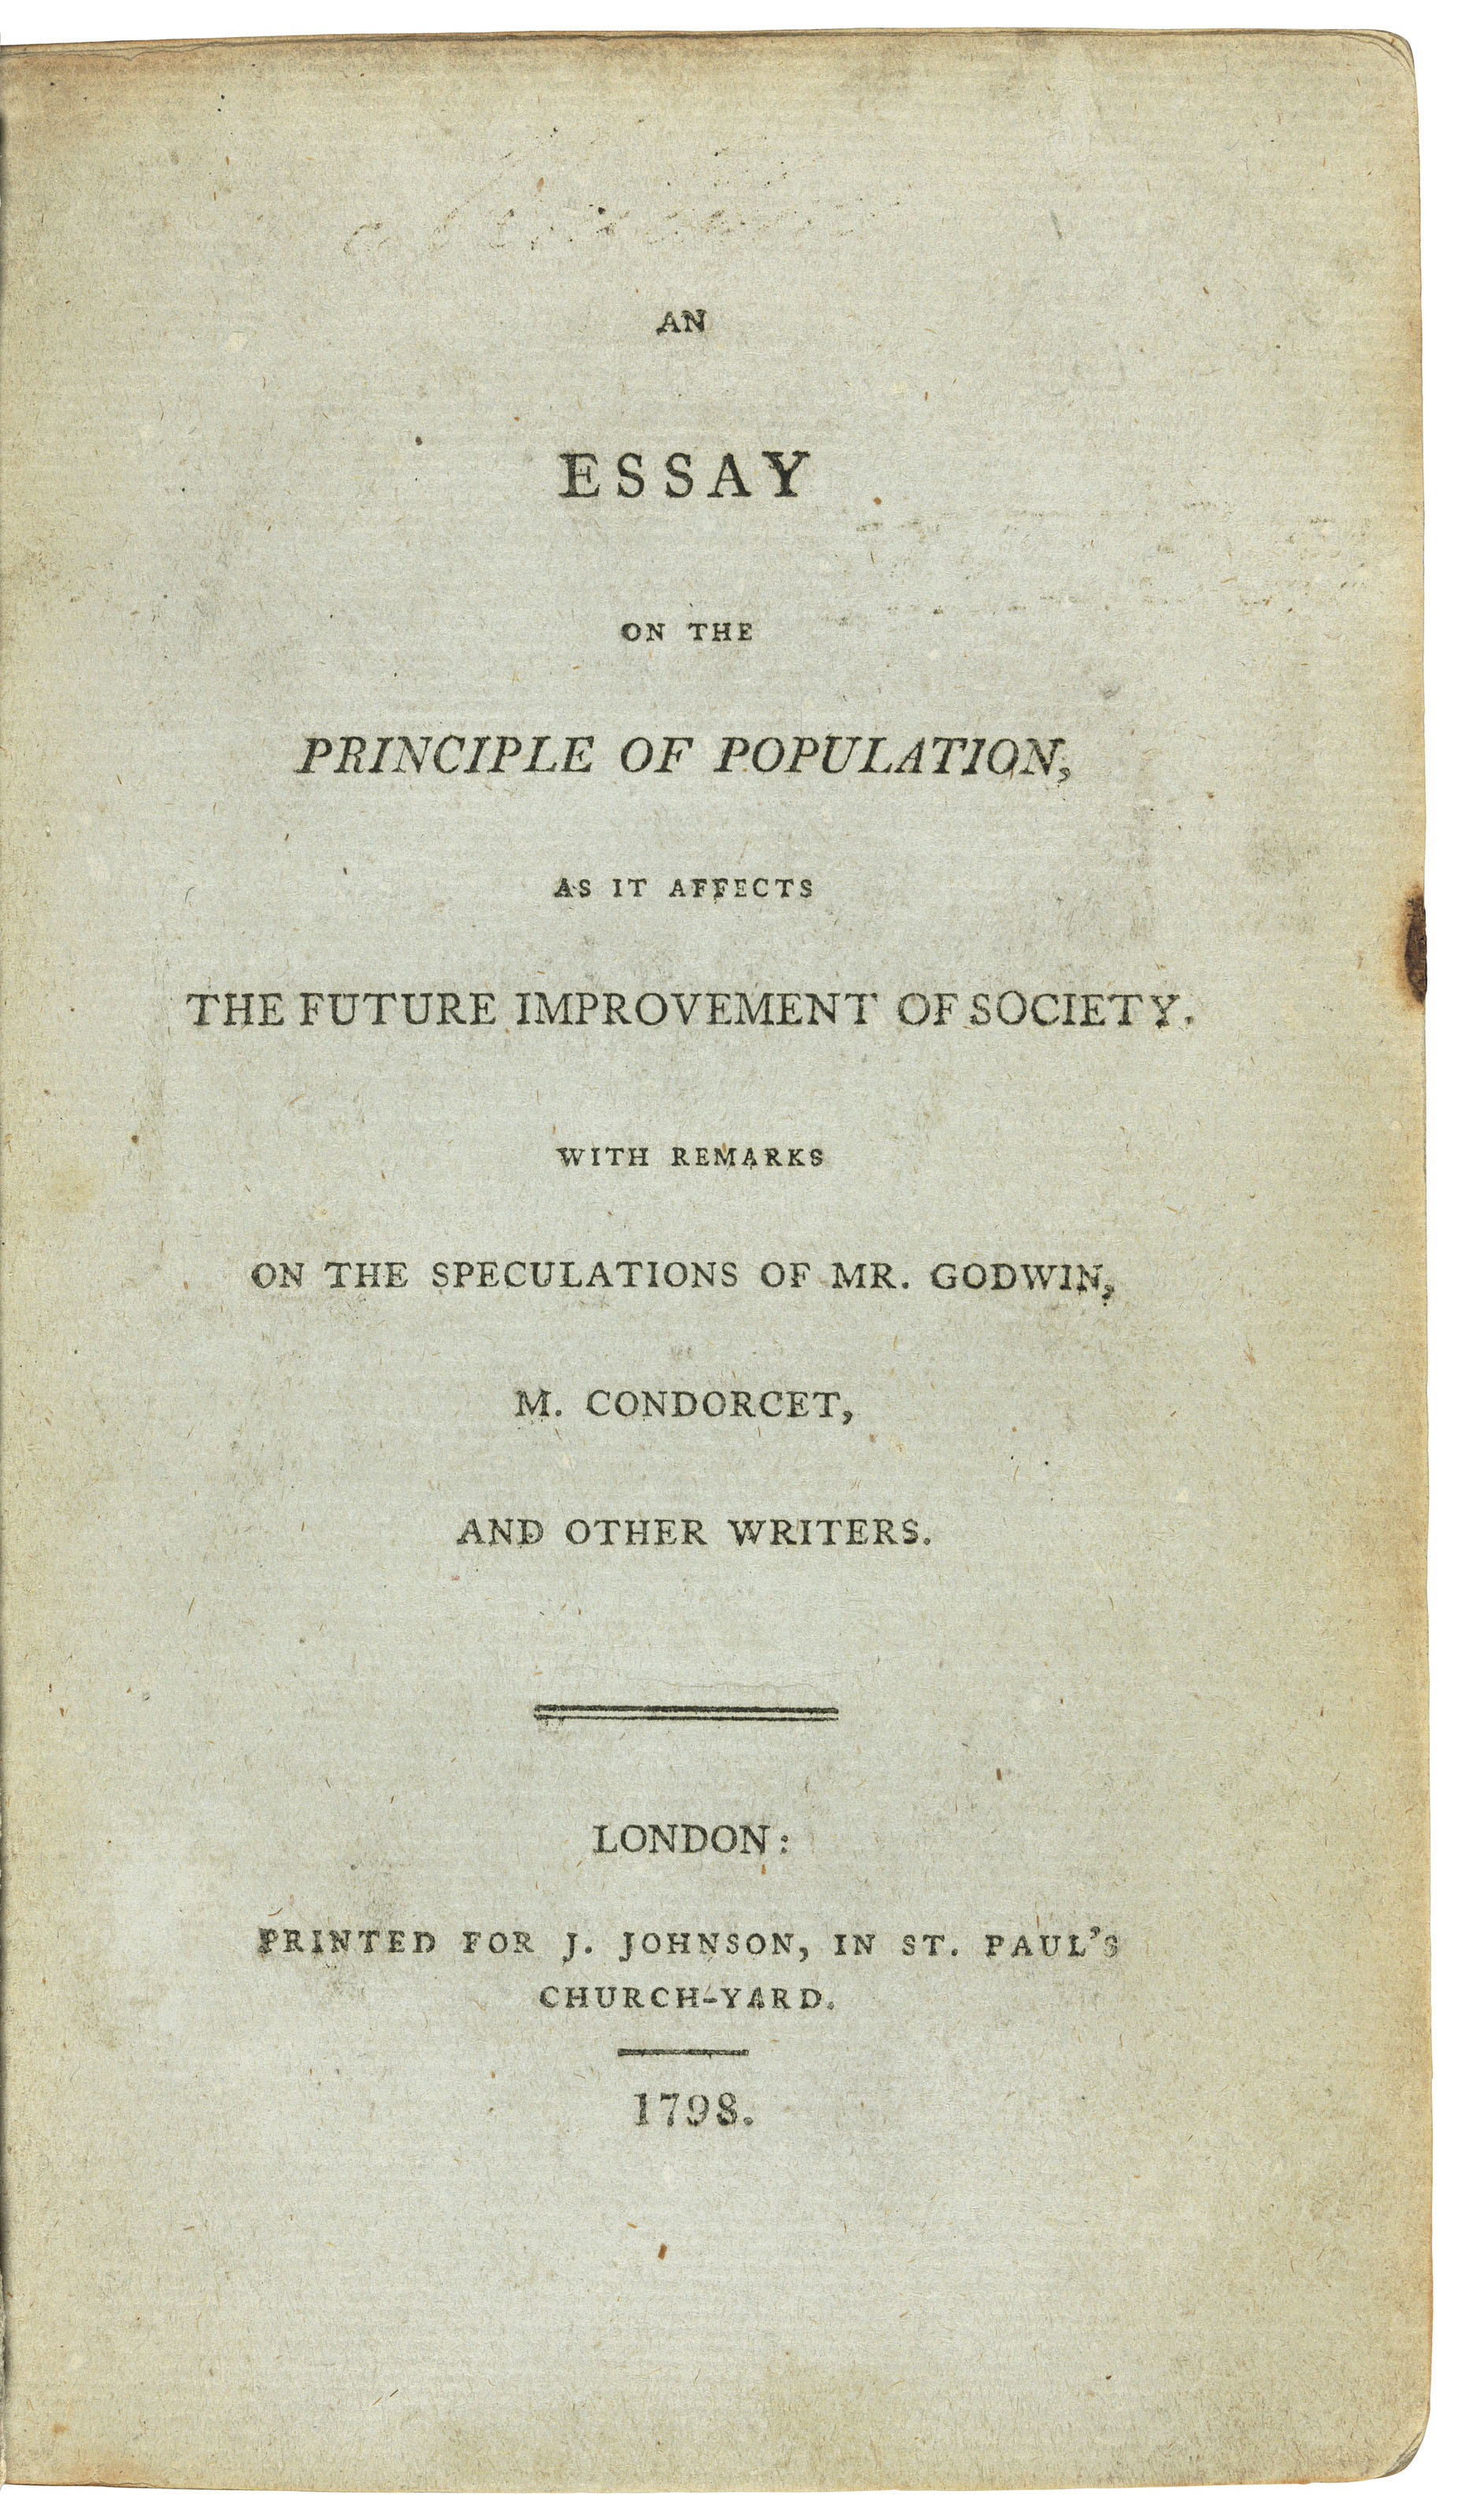 018 2018 Cks 16018 0261 000malthus Thomas Robert An Essay On The Principle Of As It Af Example Fascinating Population By Malthus Pdf In Concluded Which Following Full